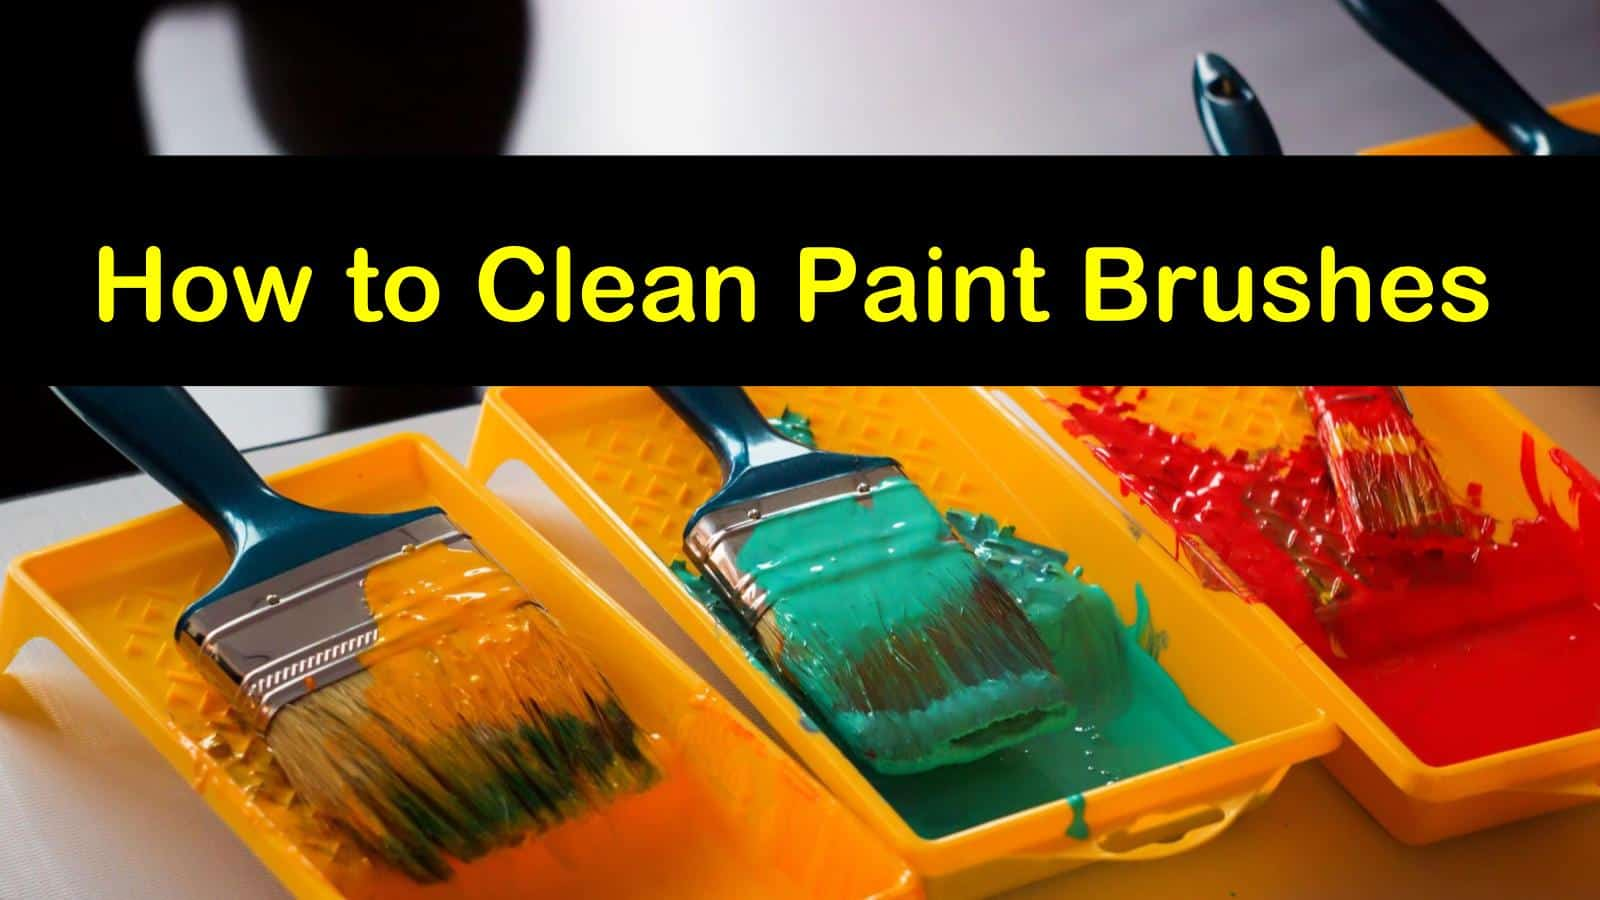 how to clean paint brushes titleimg1